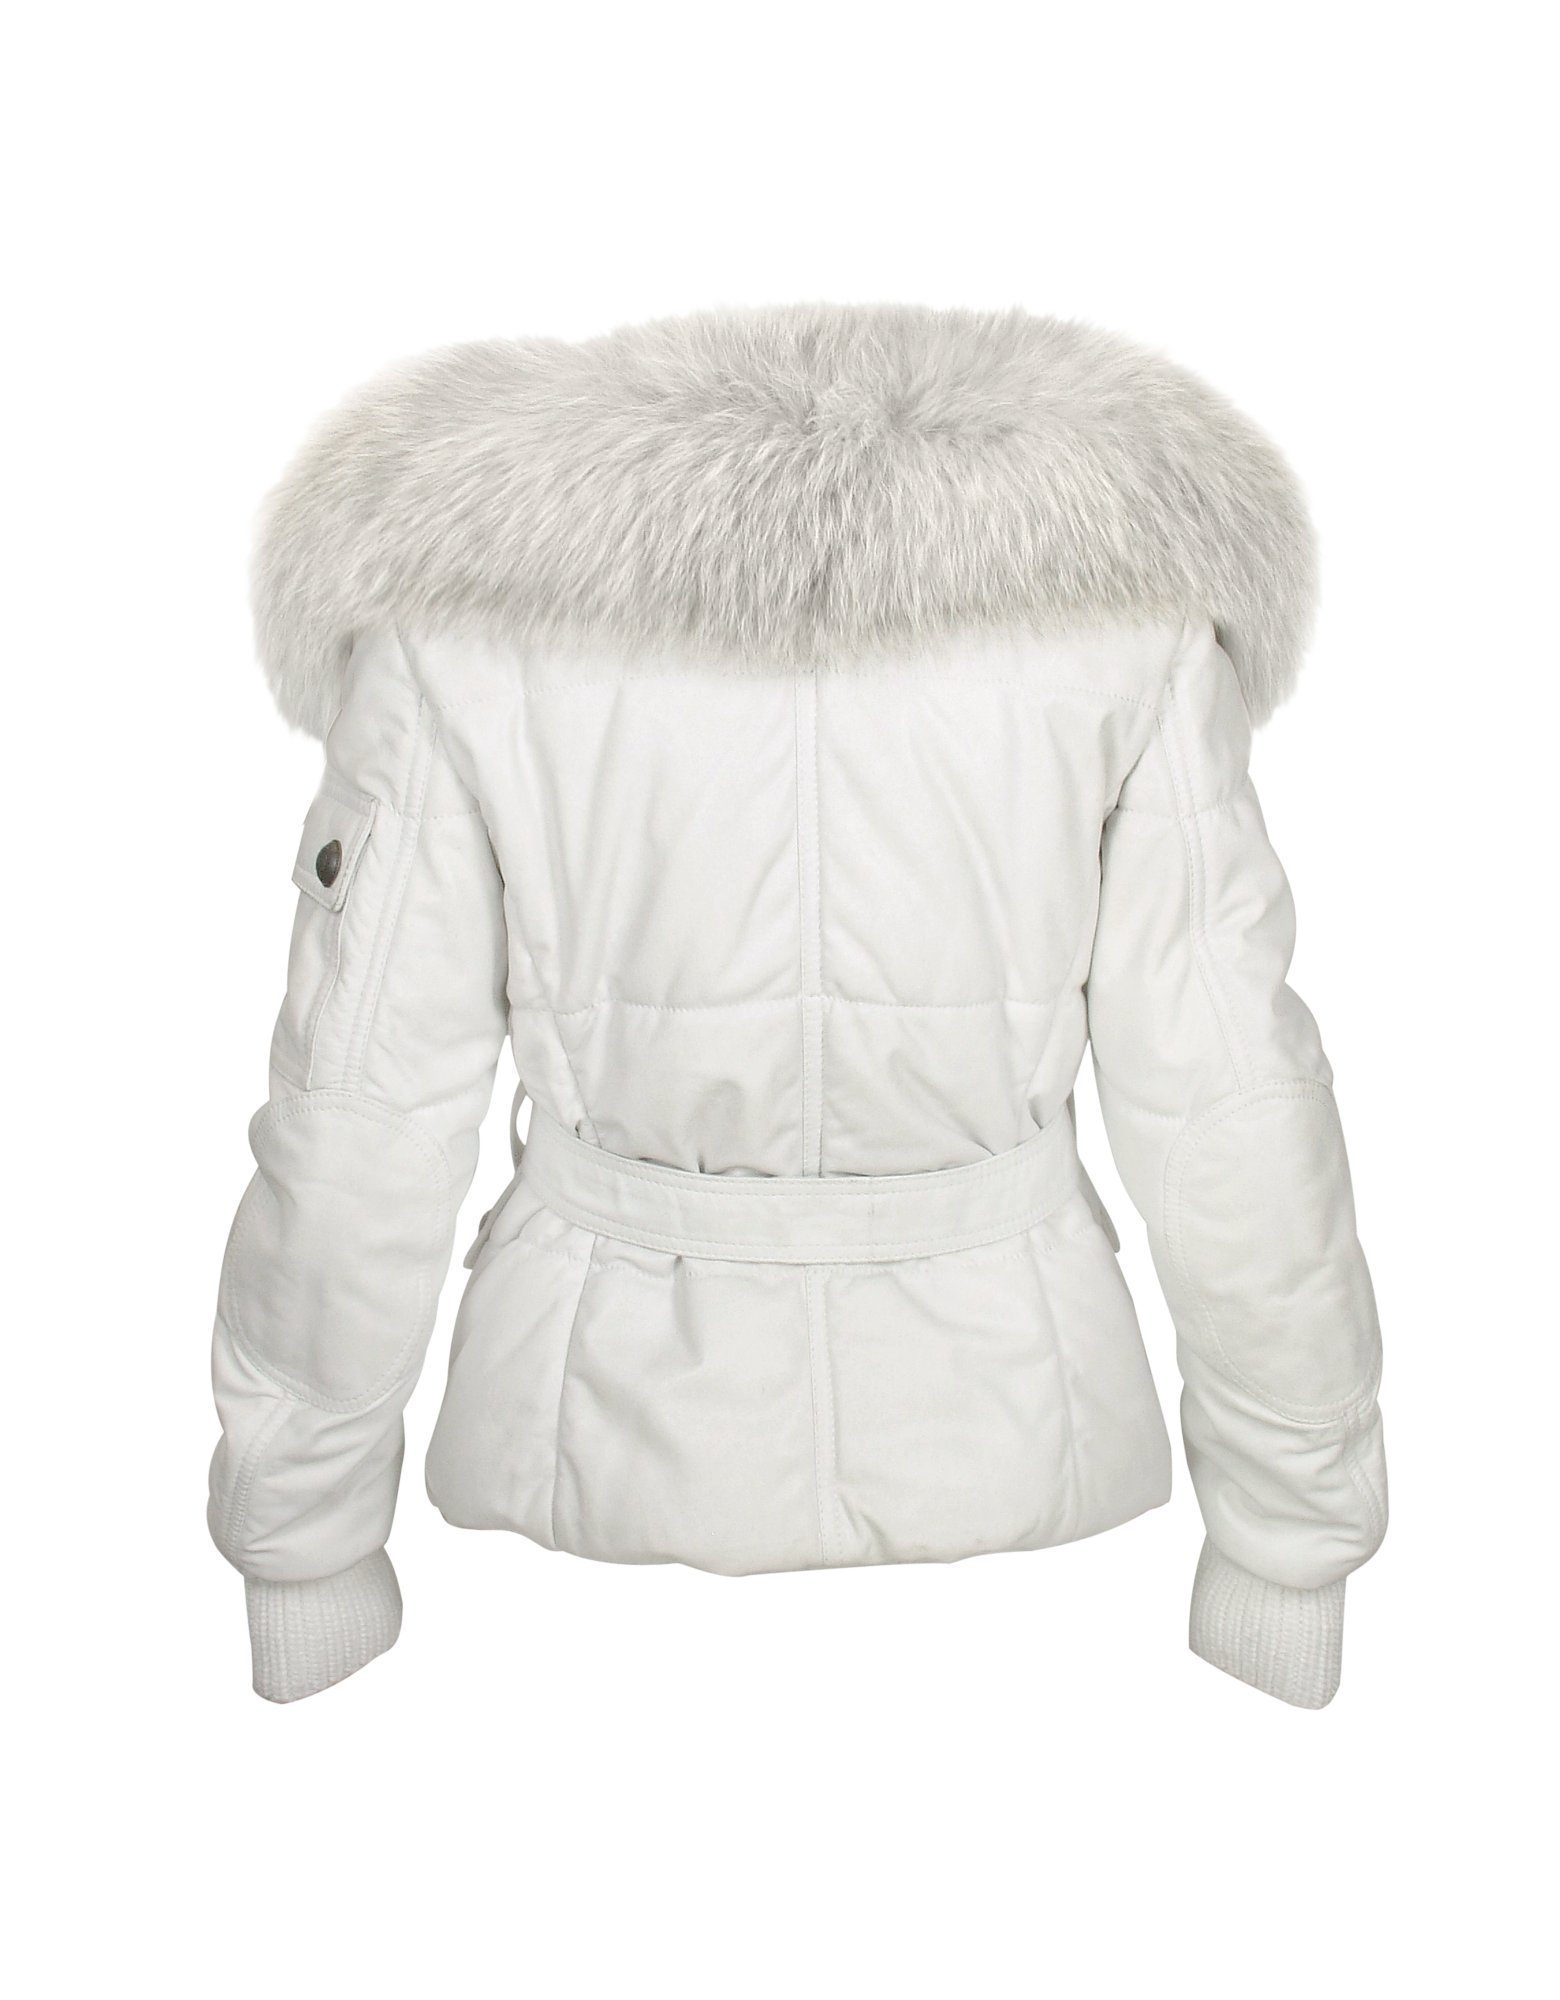 Forzieri Fur Collar Cream Multi-pocket Leather Jacket in White | Lyst